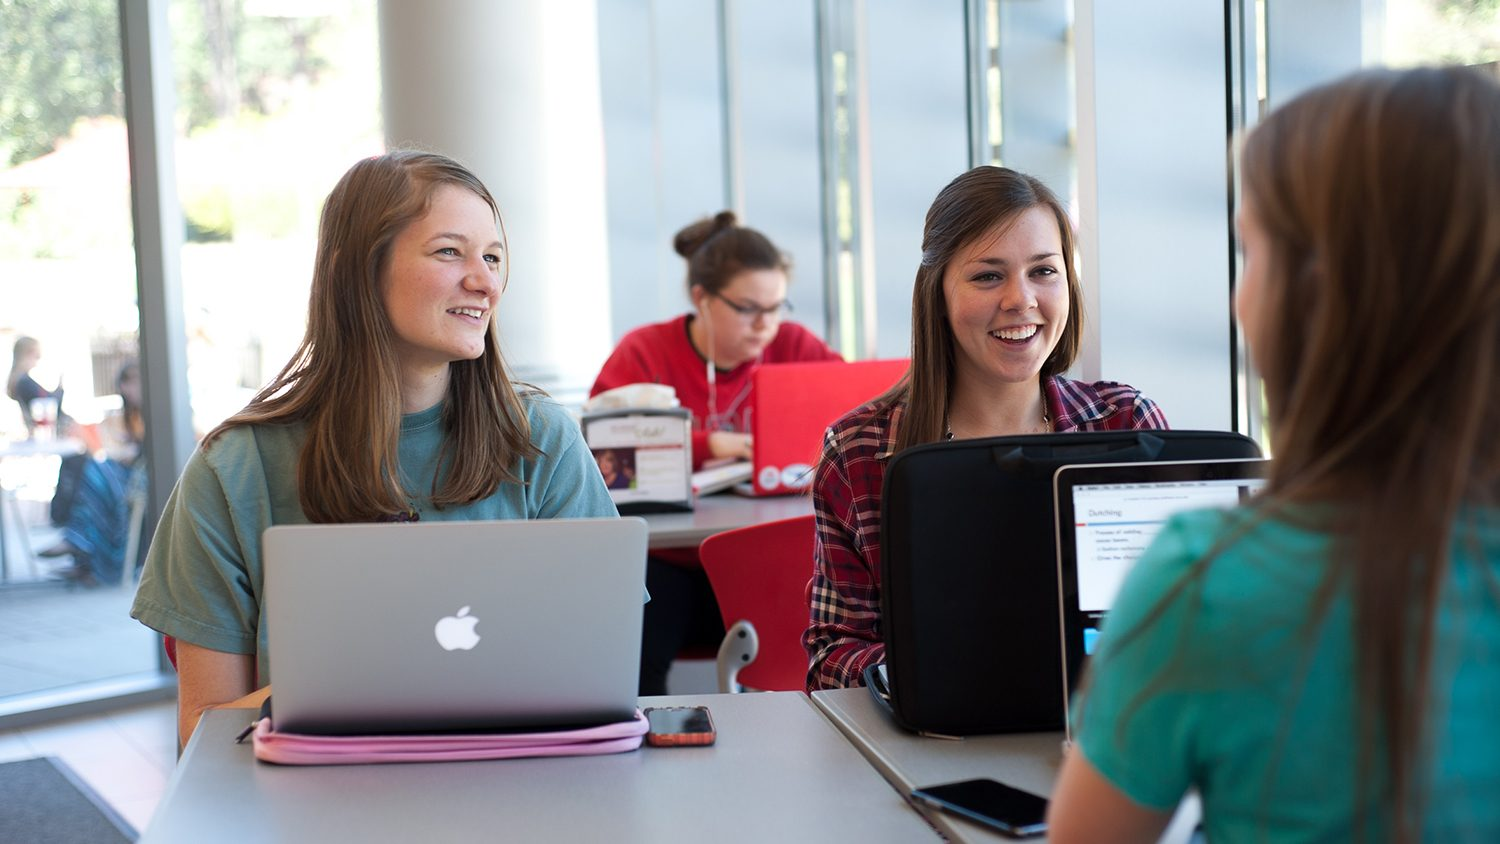 Three female students with laptops laughing in the library.